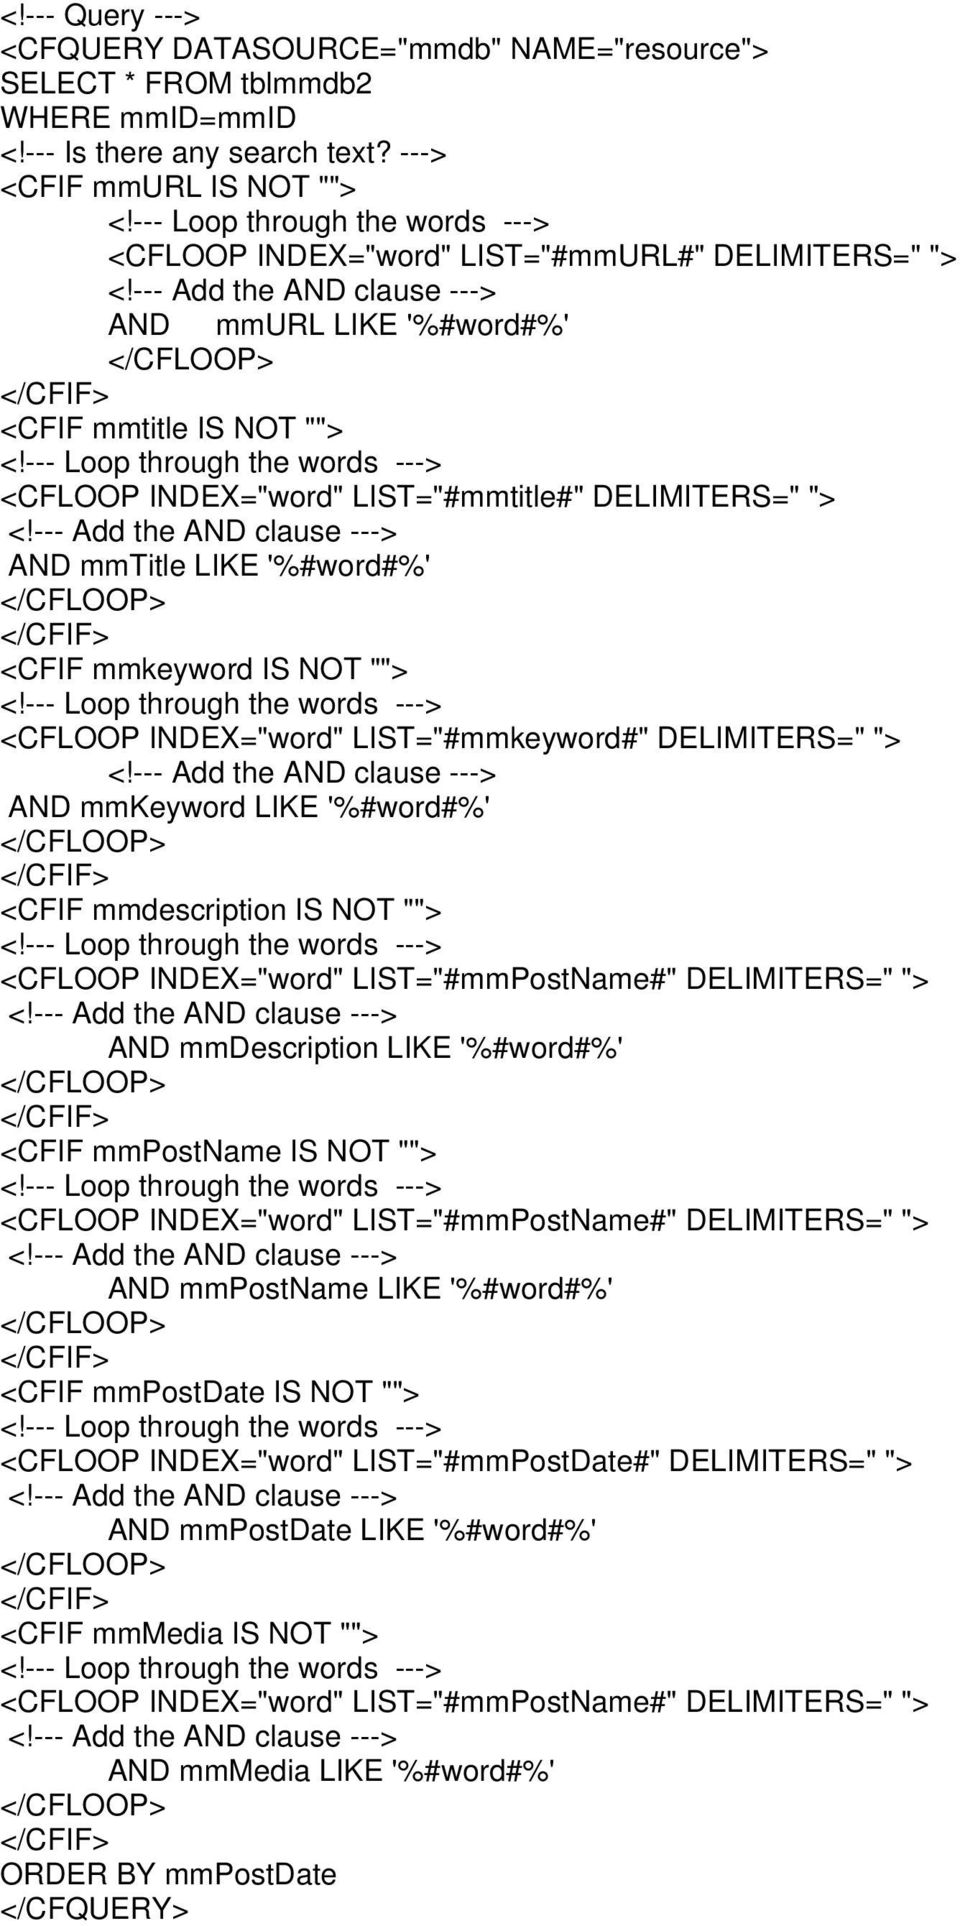 "--- Loop through the words ---> <CFLOOP INDEX=""word"" LIST=""#mmtitle#"" DELIMITERS="" ""> <!--- Add the AND clause ---> AND mmtitle LIKE '%#word#%' </CFLOOP> </CFIF> <CFIF mmkeyword IS NOT """"> <!"